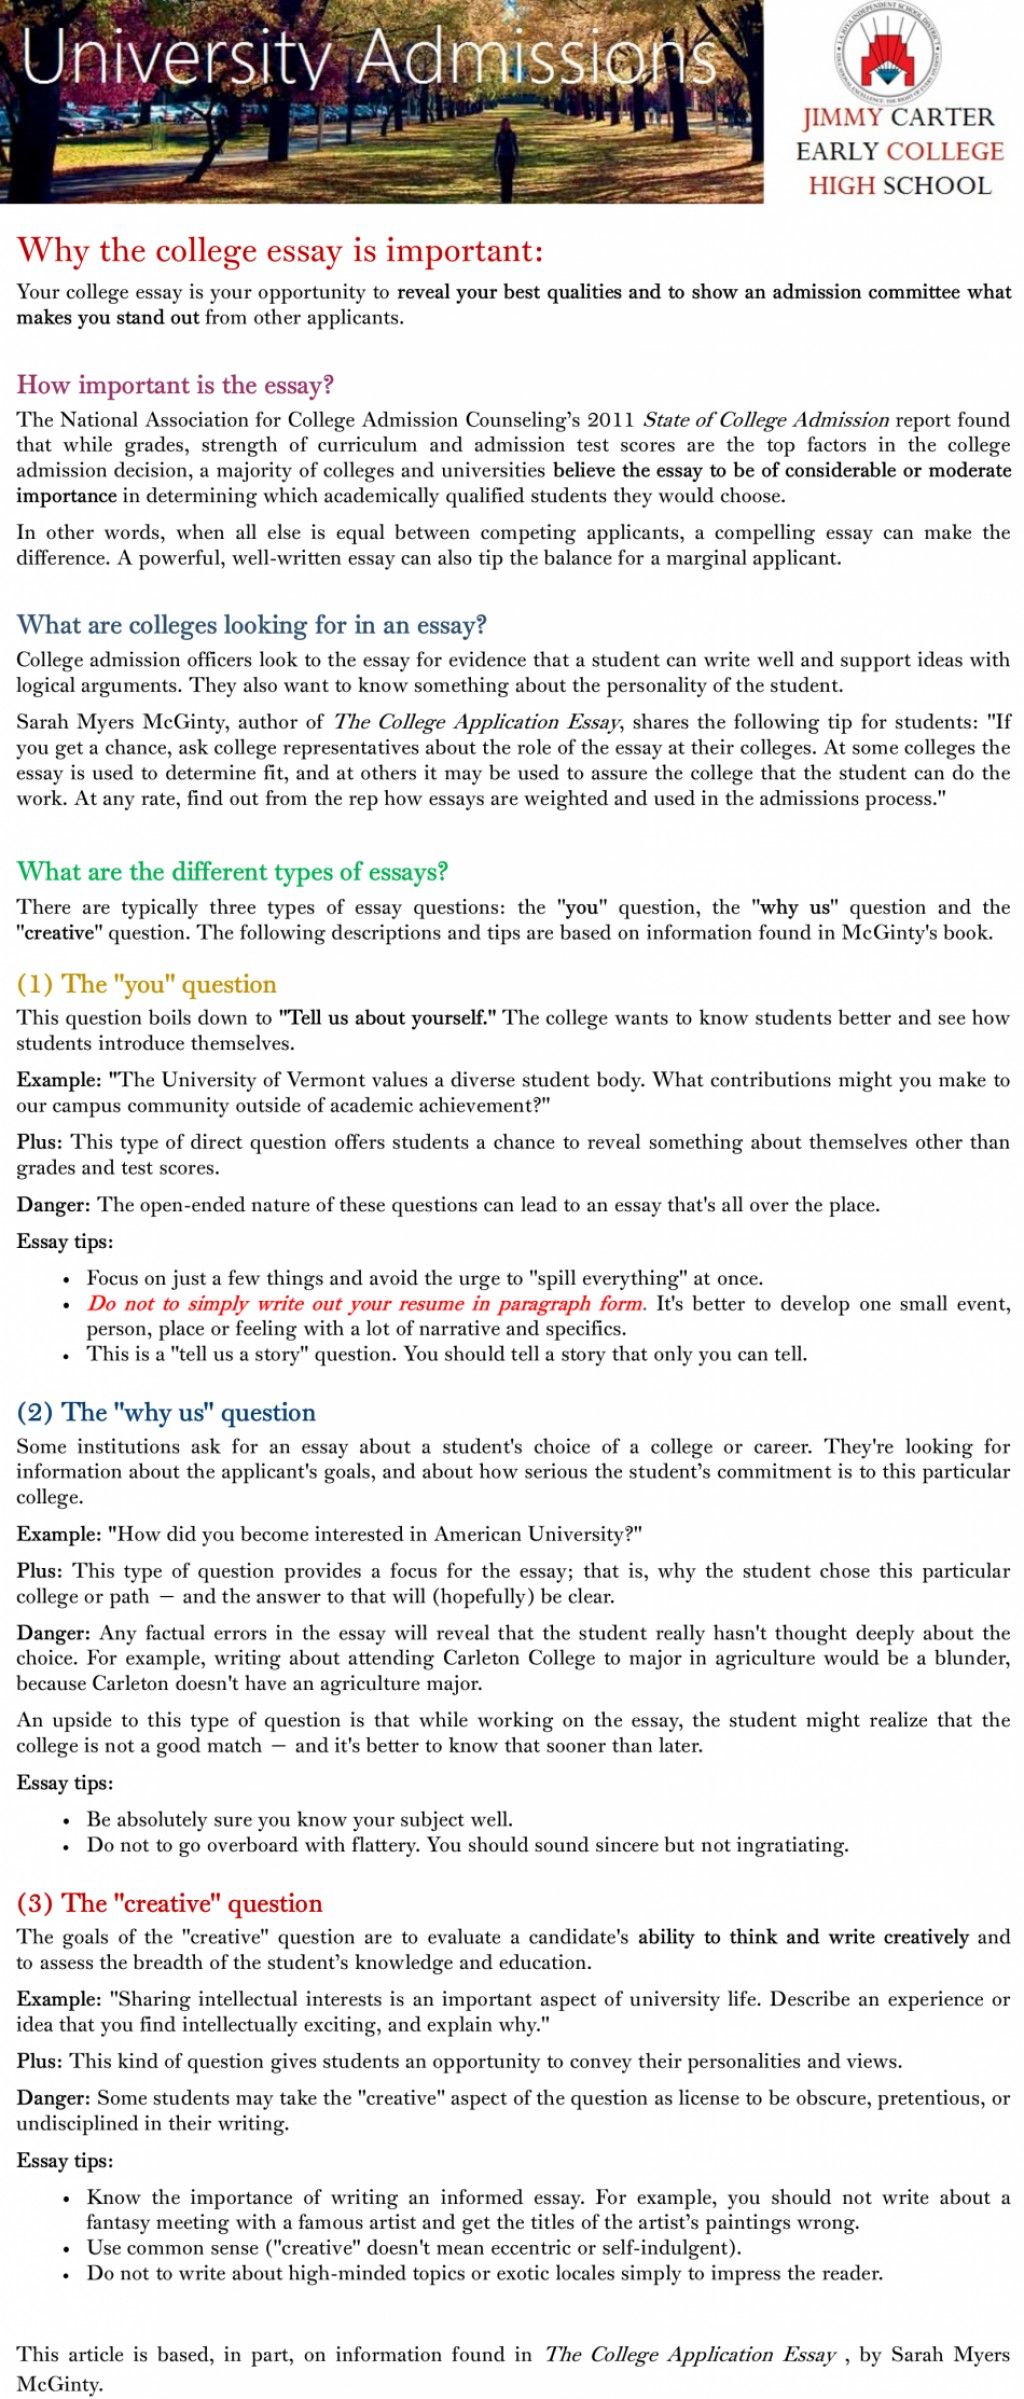 025 College Admission Essay Example Img Pd 015819 1hrlsw Rare Prompts Format Examples Ivy League Large